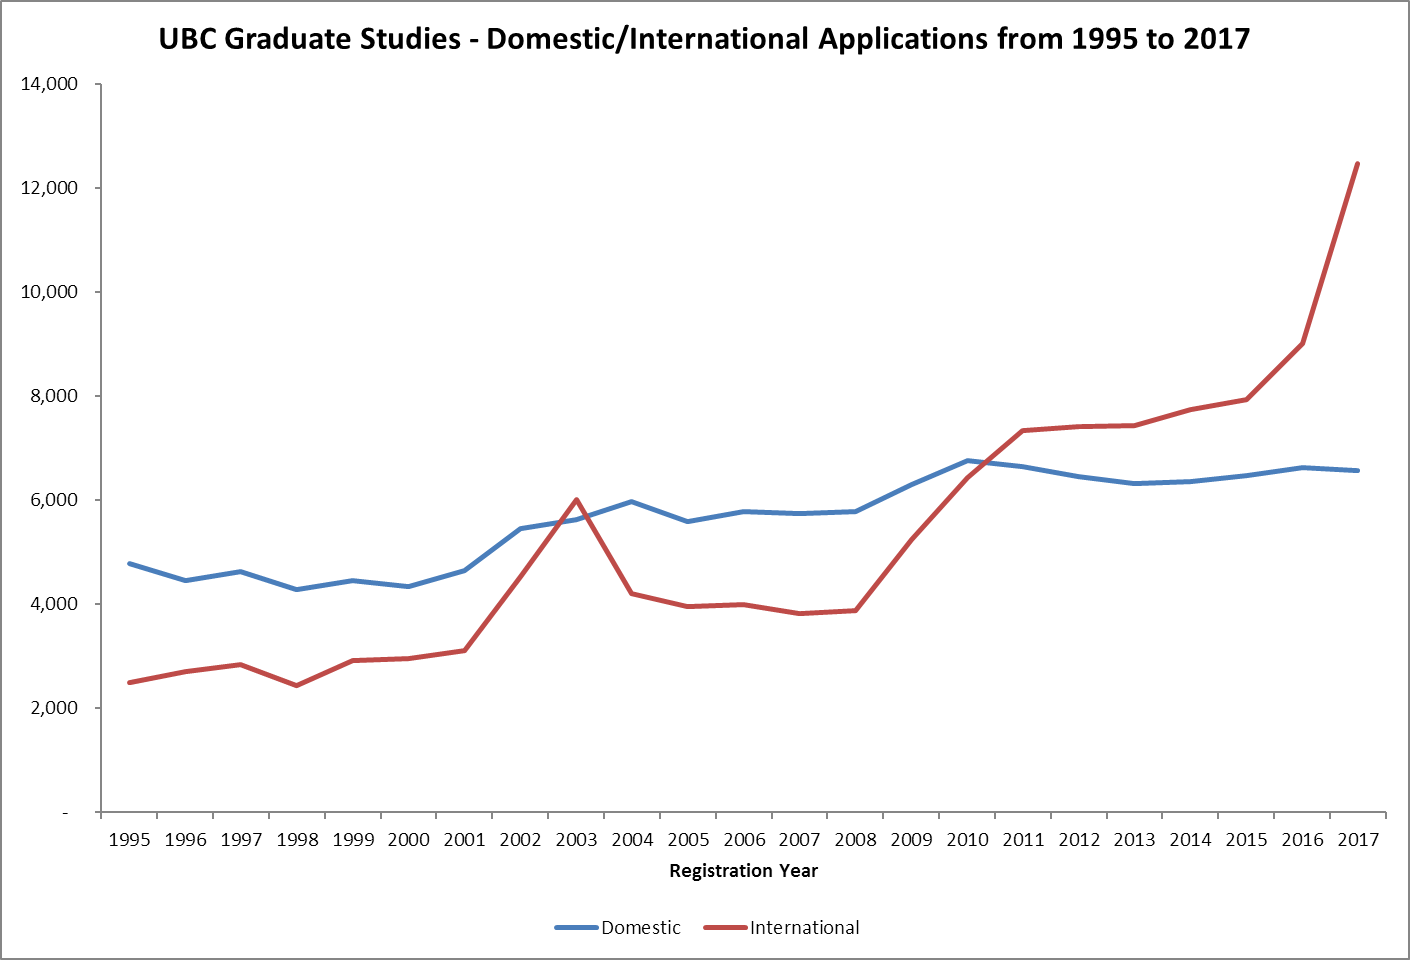 UBC Graduate Studies - Masters and Doctoral International Application Numbers from 1995 to 2017